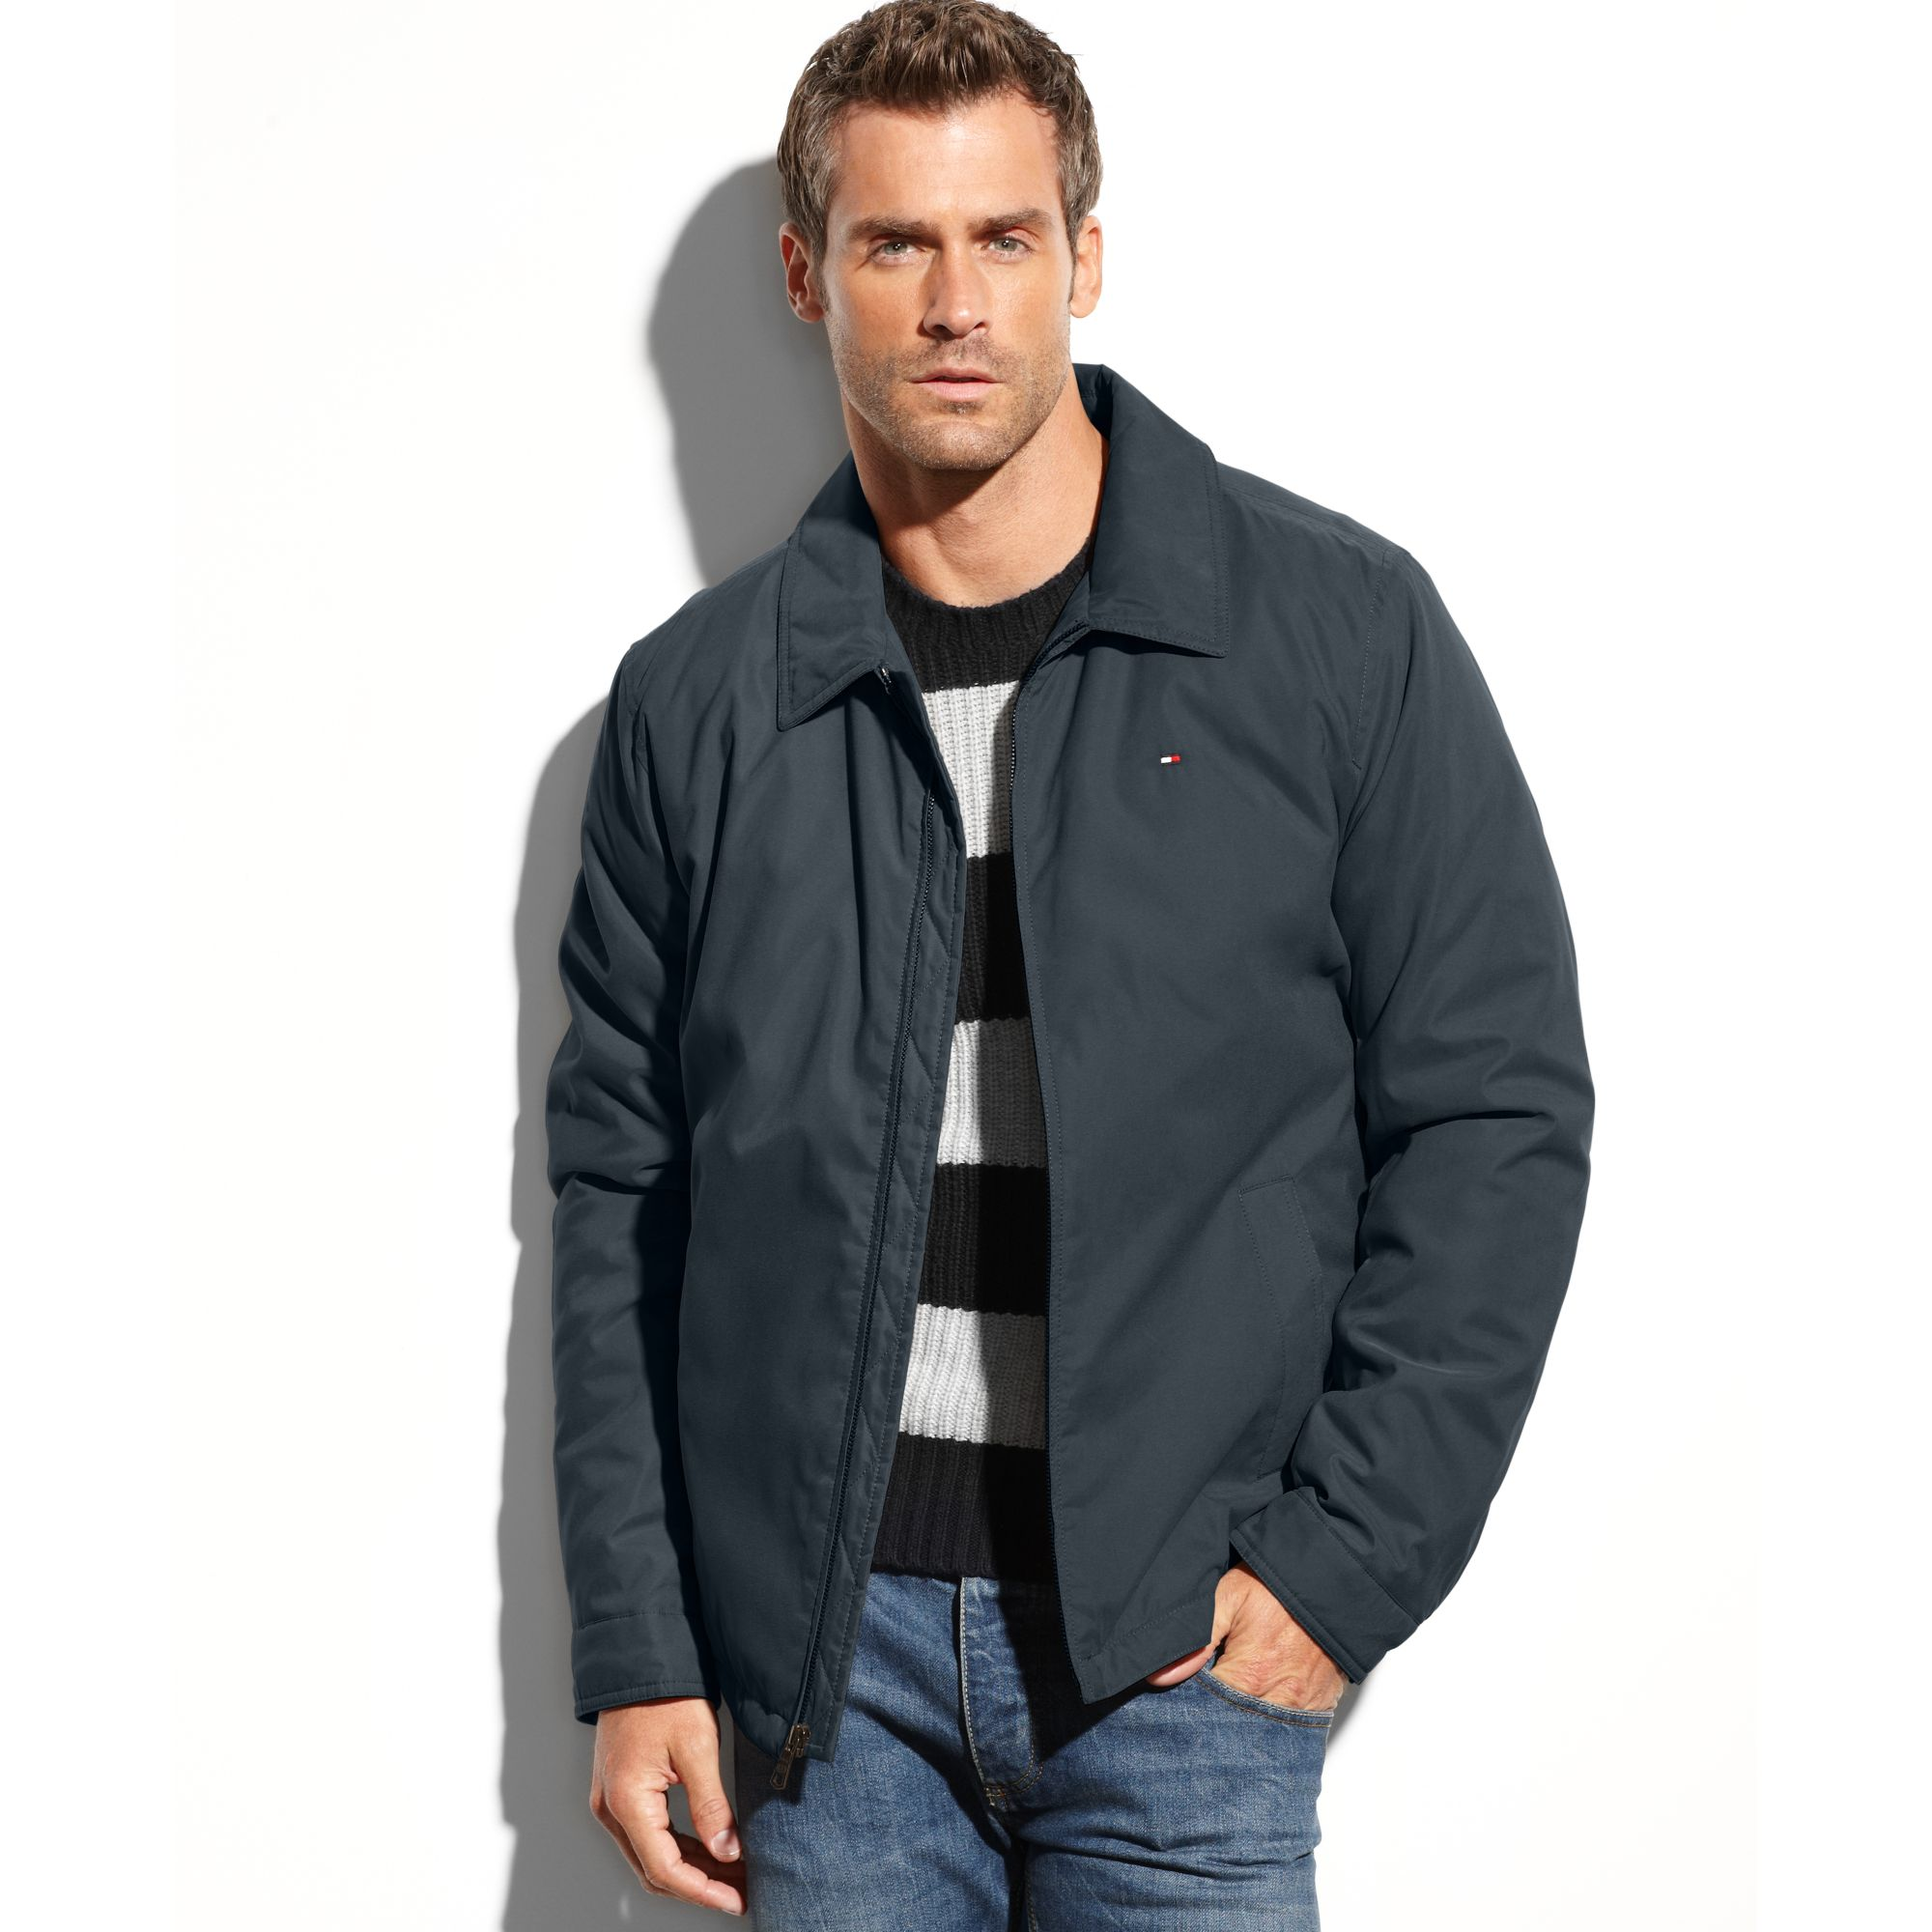 tommy hilfiger Shop tommy hilfiger at bloomingdalescom free shipping and free returns for loyallists or any order over $150.